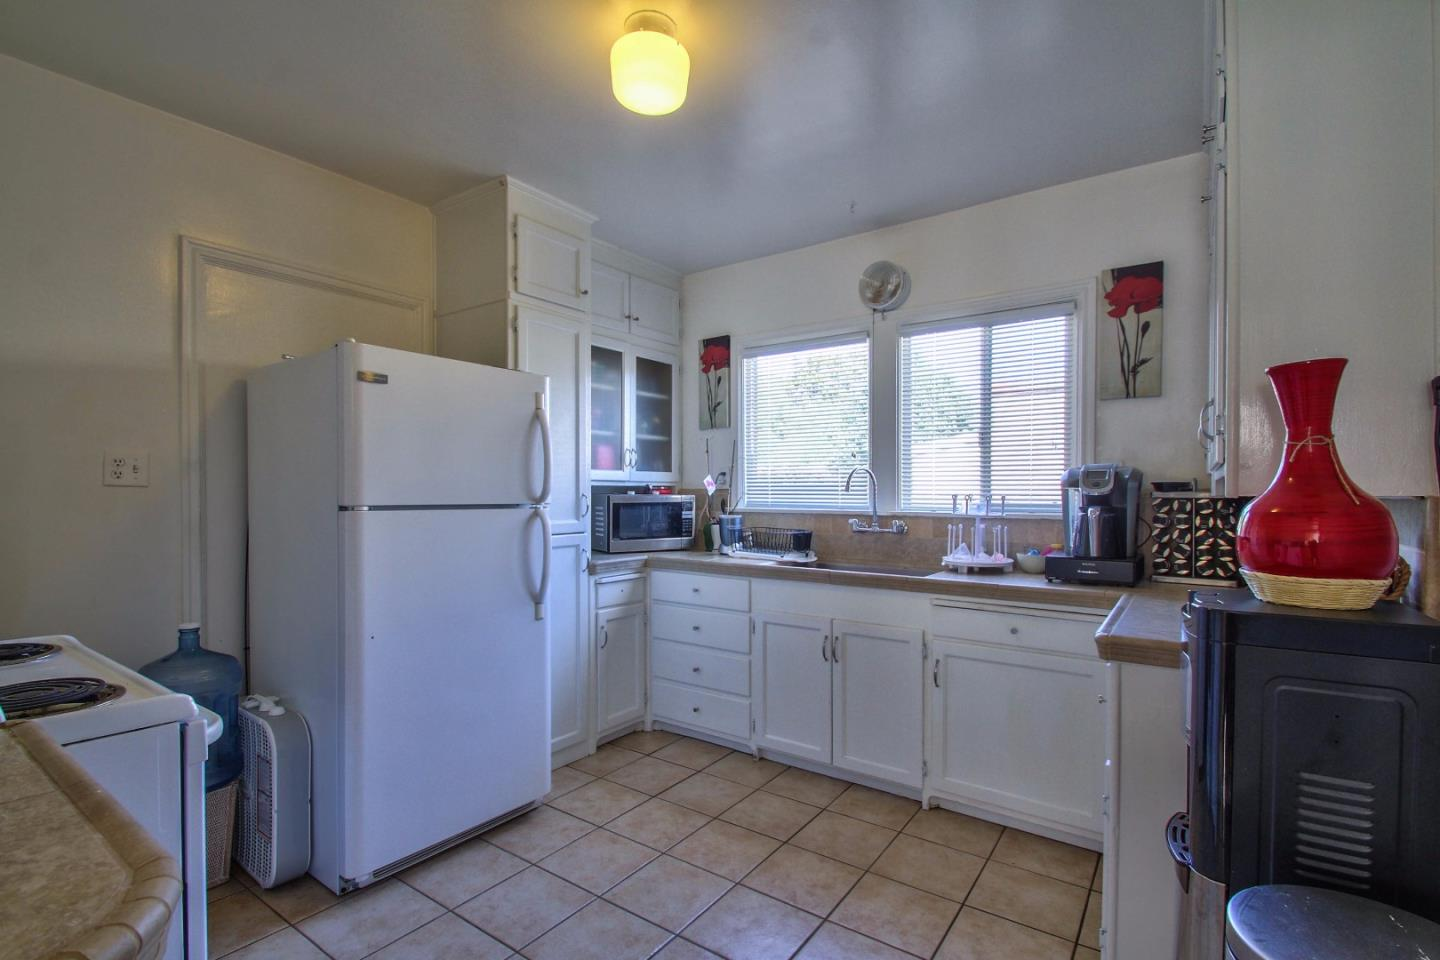 Additional photo for property listing at 14 Orange Drive 14 Orange Drive Salinas, カリフォルニア 93901 アメリカ合衆国